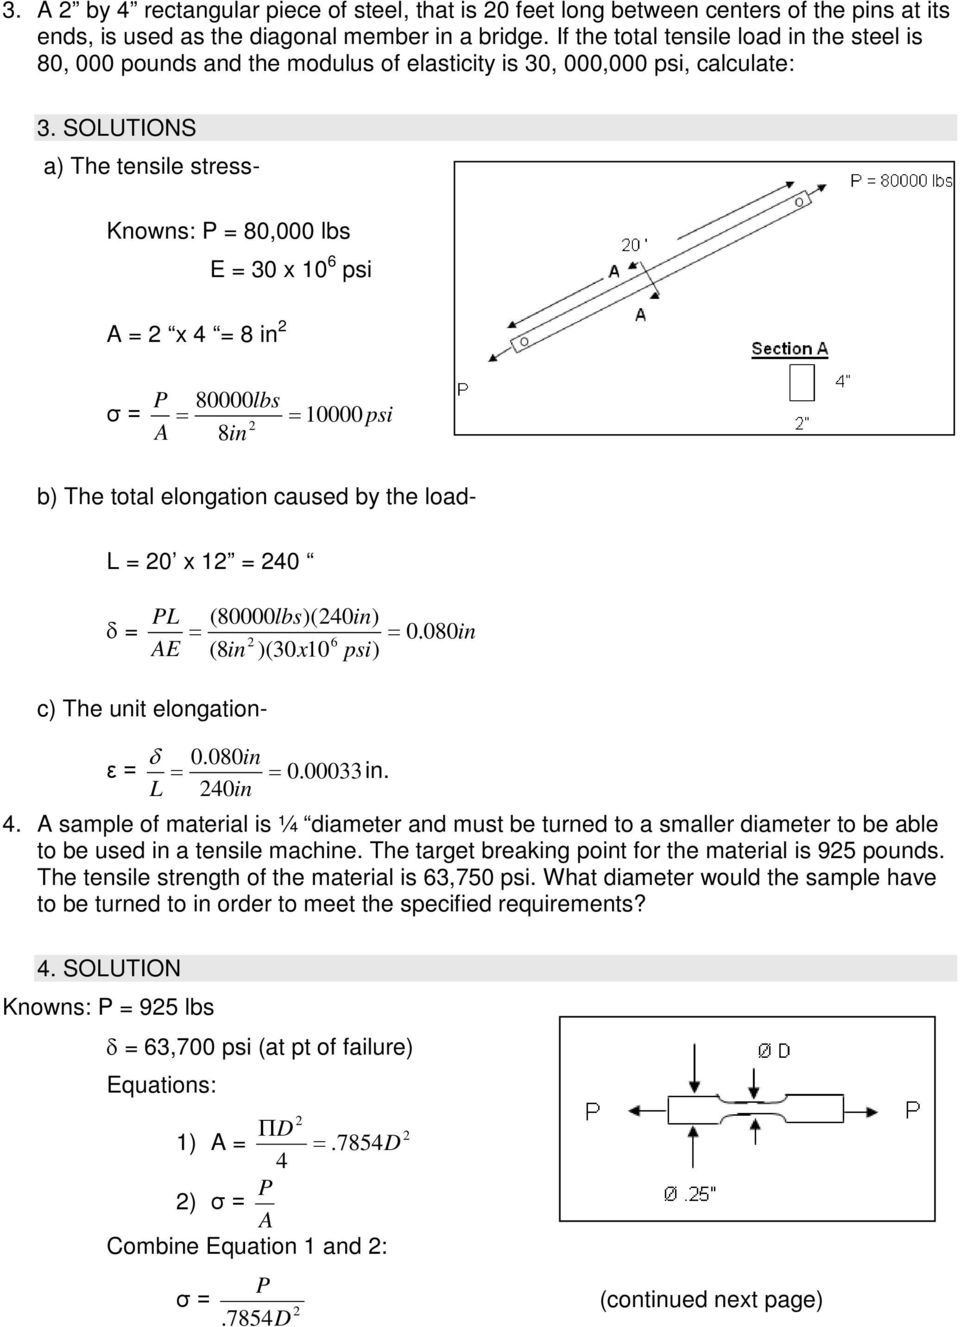 Activity 2 3b Engineering Problem Solving Answer Key - PDF